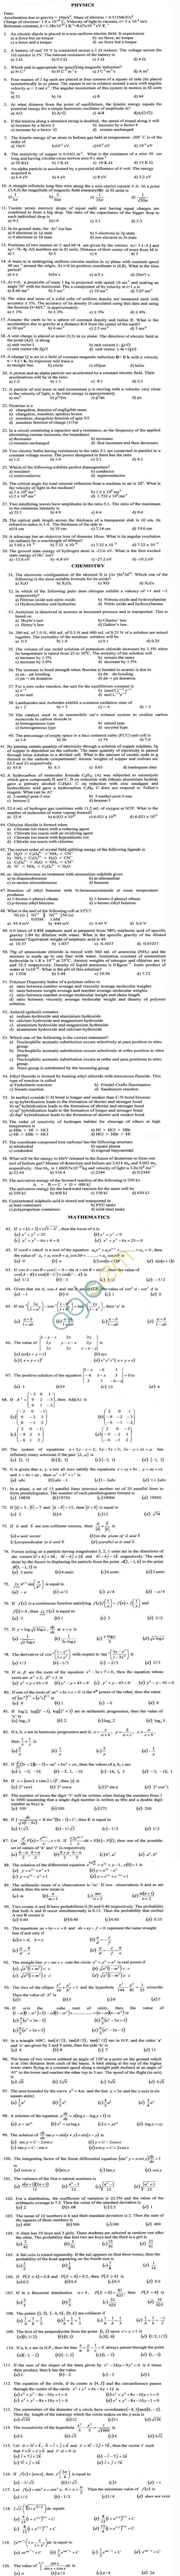 AEEE Sample Question Paper